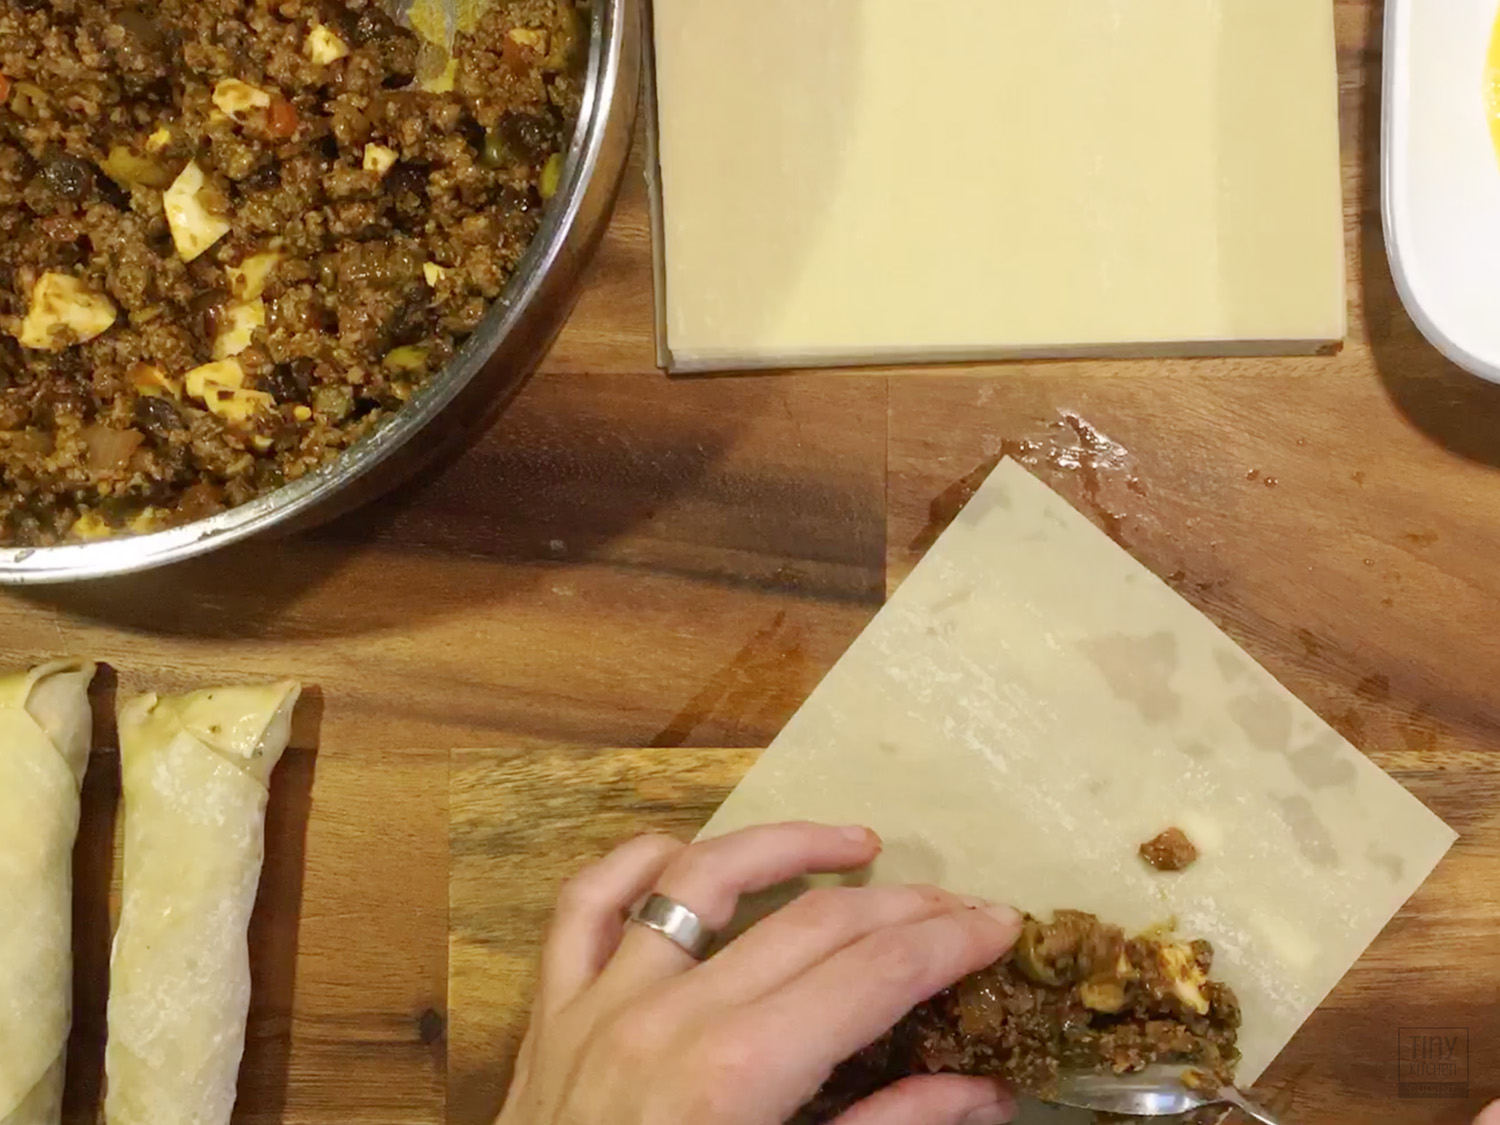 Wrapping the vegetarian fake beef and chorizo crumbles in egg roll wrappers is tedious, but can be easily frozen for a quick and tasty snack later on! | Tiny Kitchen Cuisine | https://tiny.kitchen/